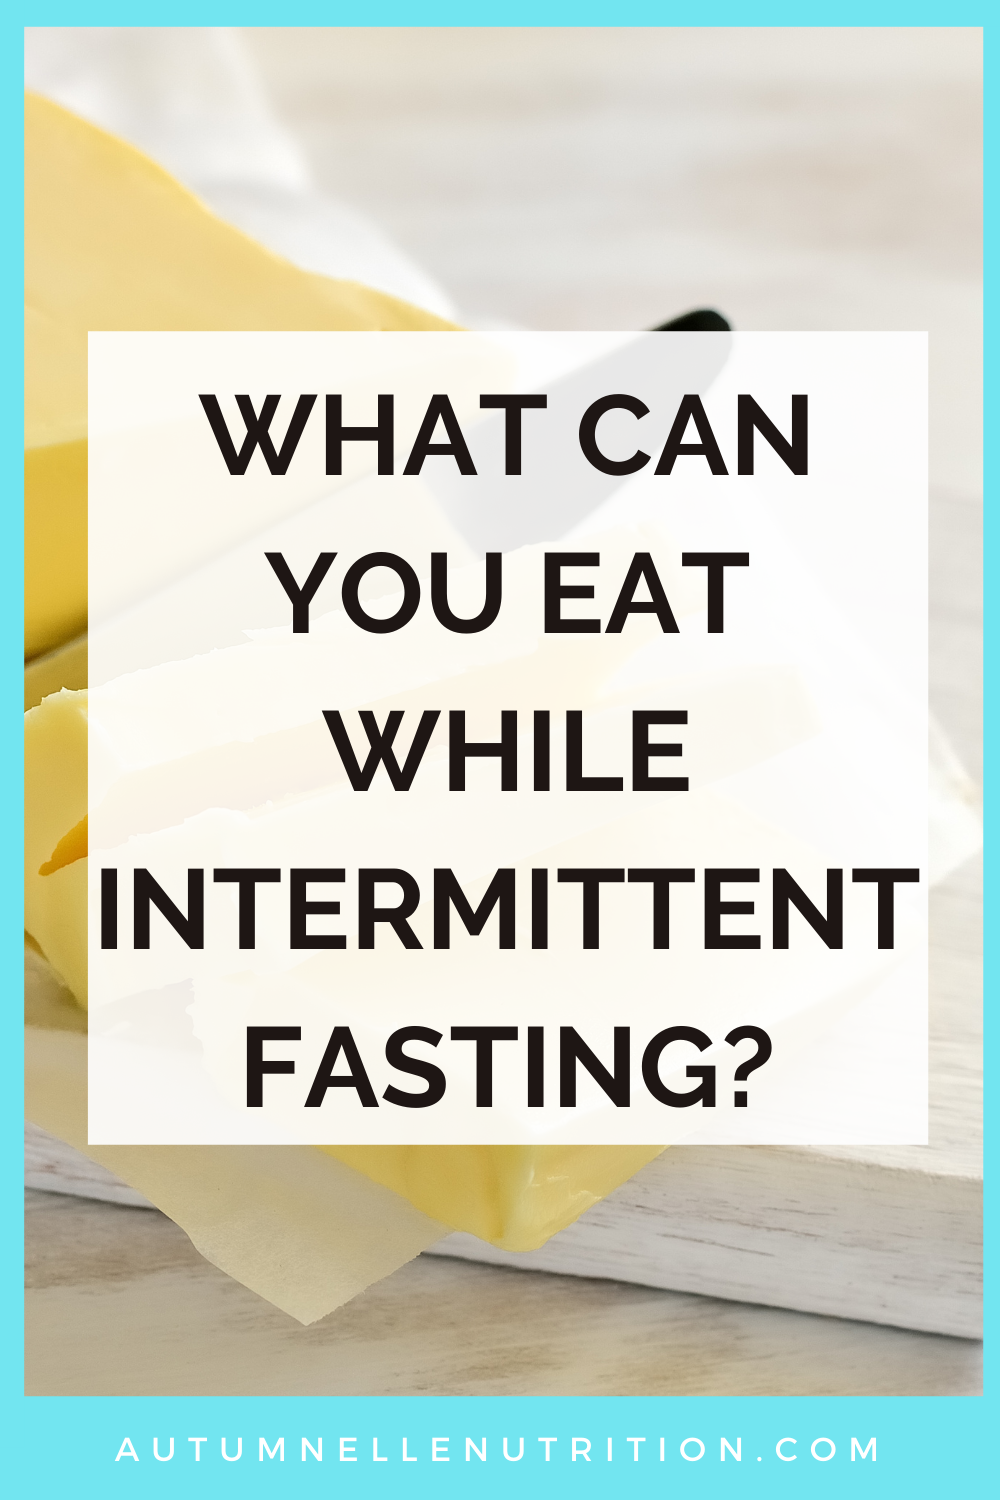 what can you eat while fasting